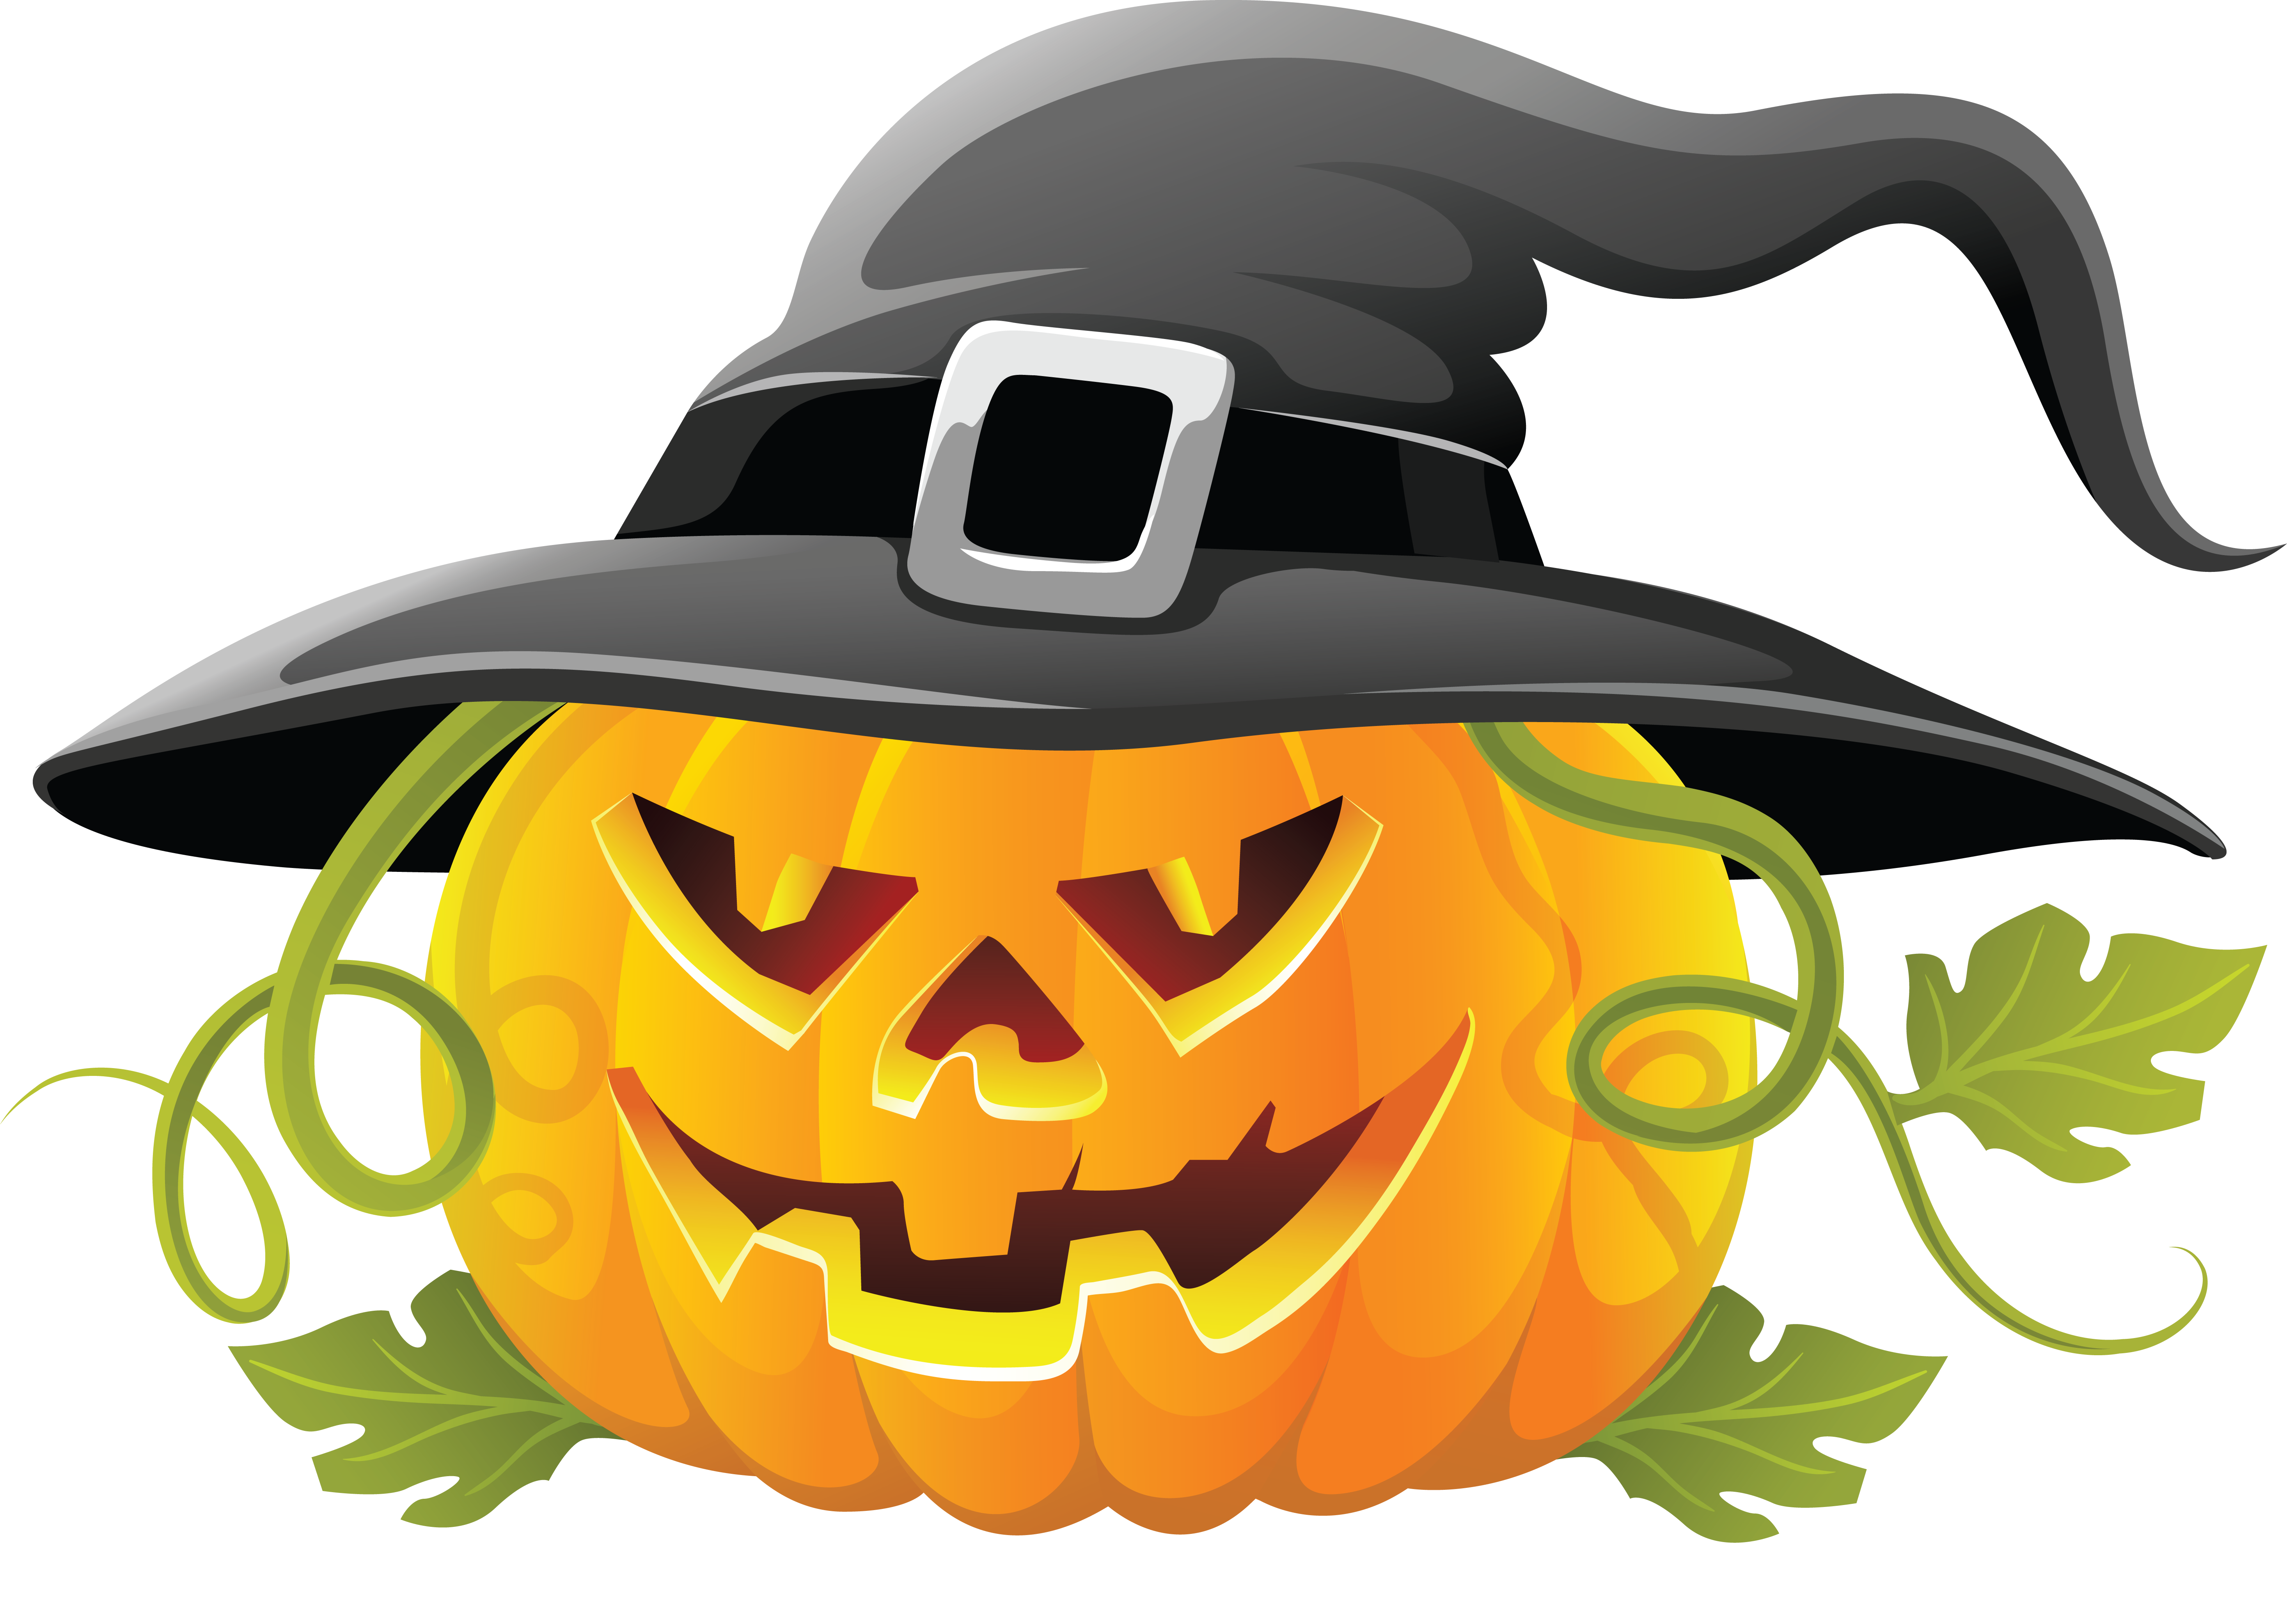 Halloween png. Large transparent pumpkin with